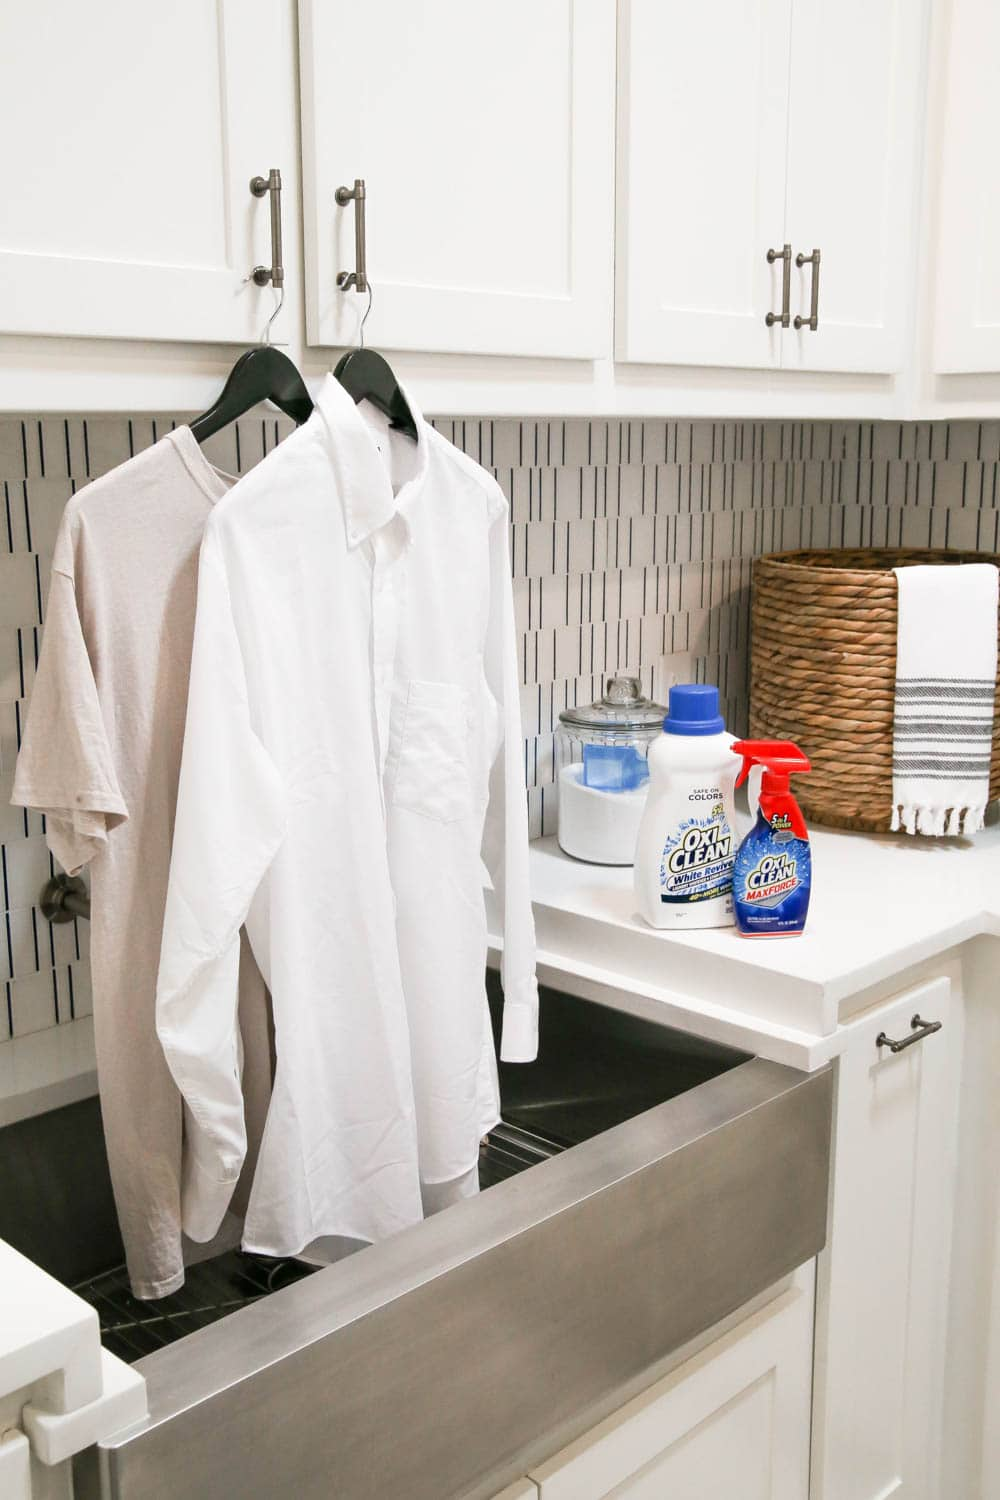 Everyone needs these OxiClean products in their cleaning and Laundry room cabinets to take care of your home. #ad #OxiClean #OxiCleanWOW #SmartSolutions